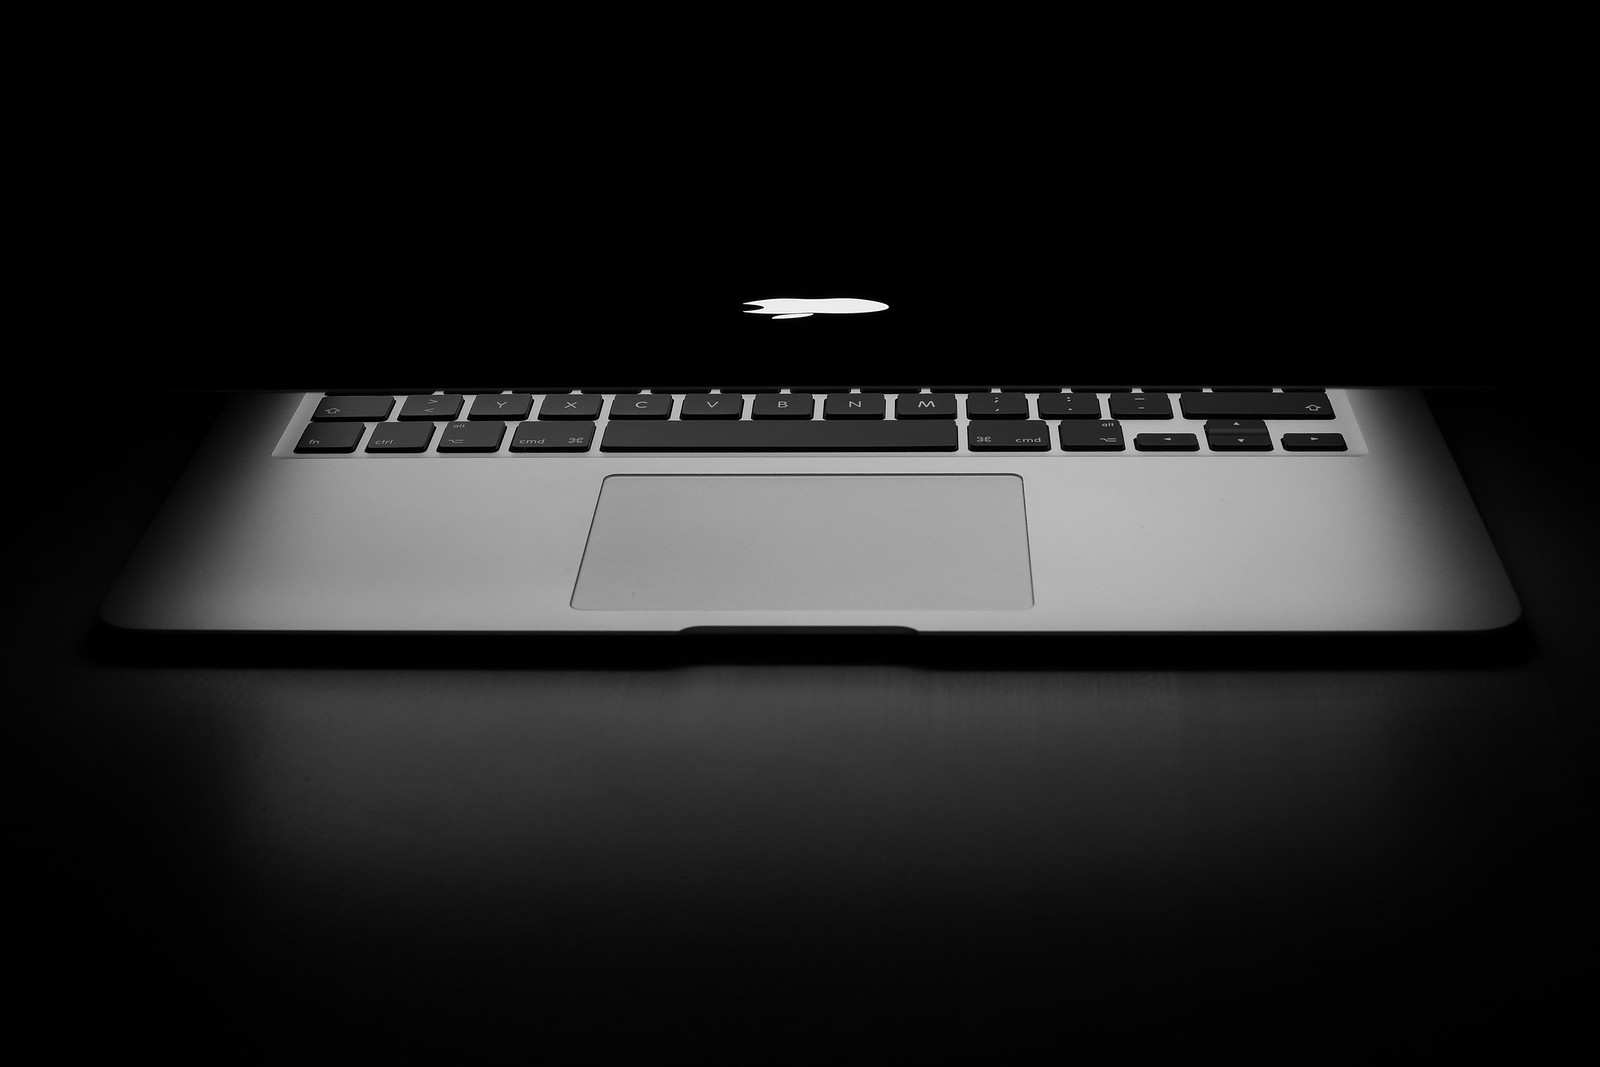 Macbook in Black and White